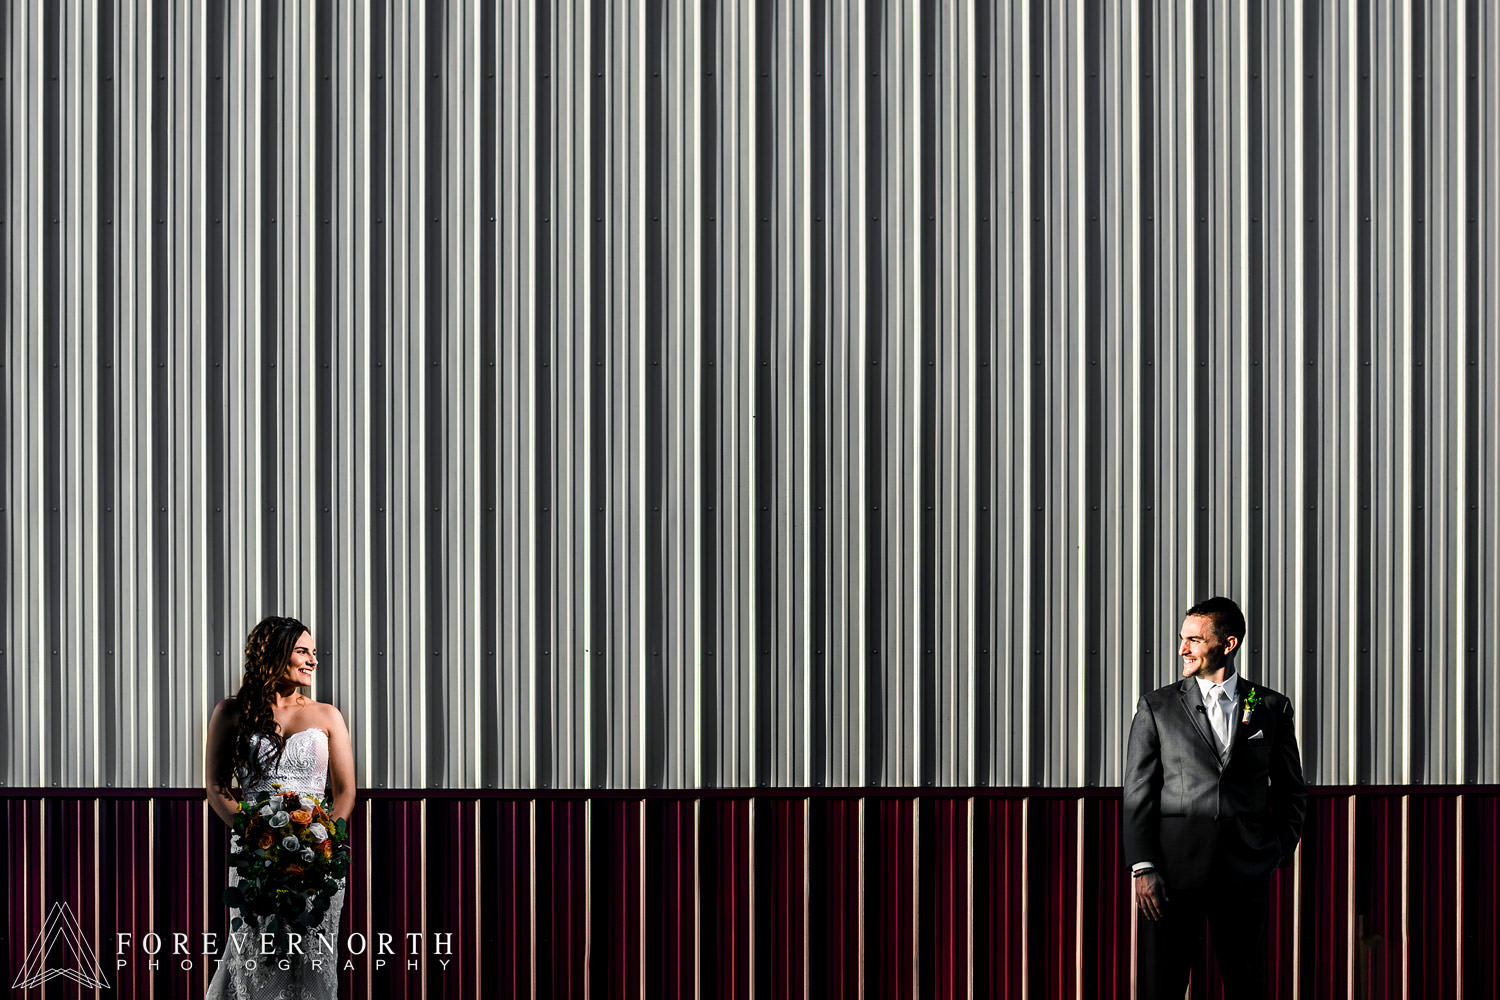 Mendyk-Valenzano-Family-Winery-NJ-Wedding-Photographer-22.JPG